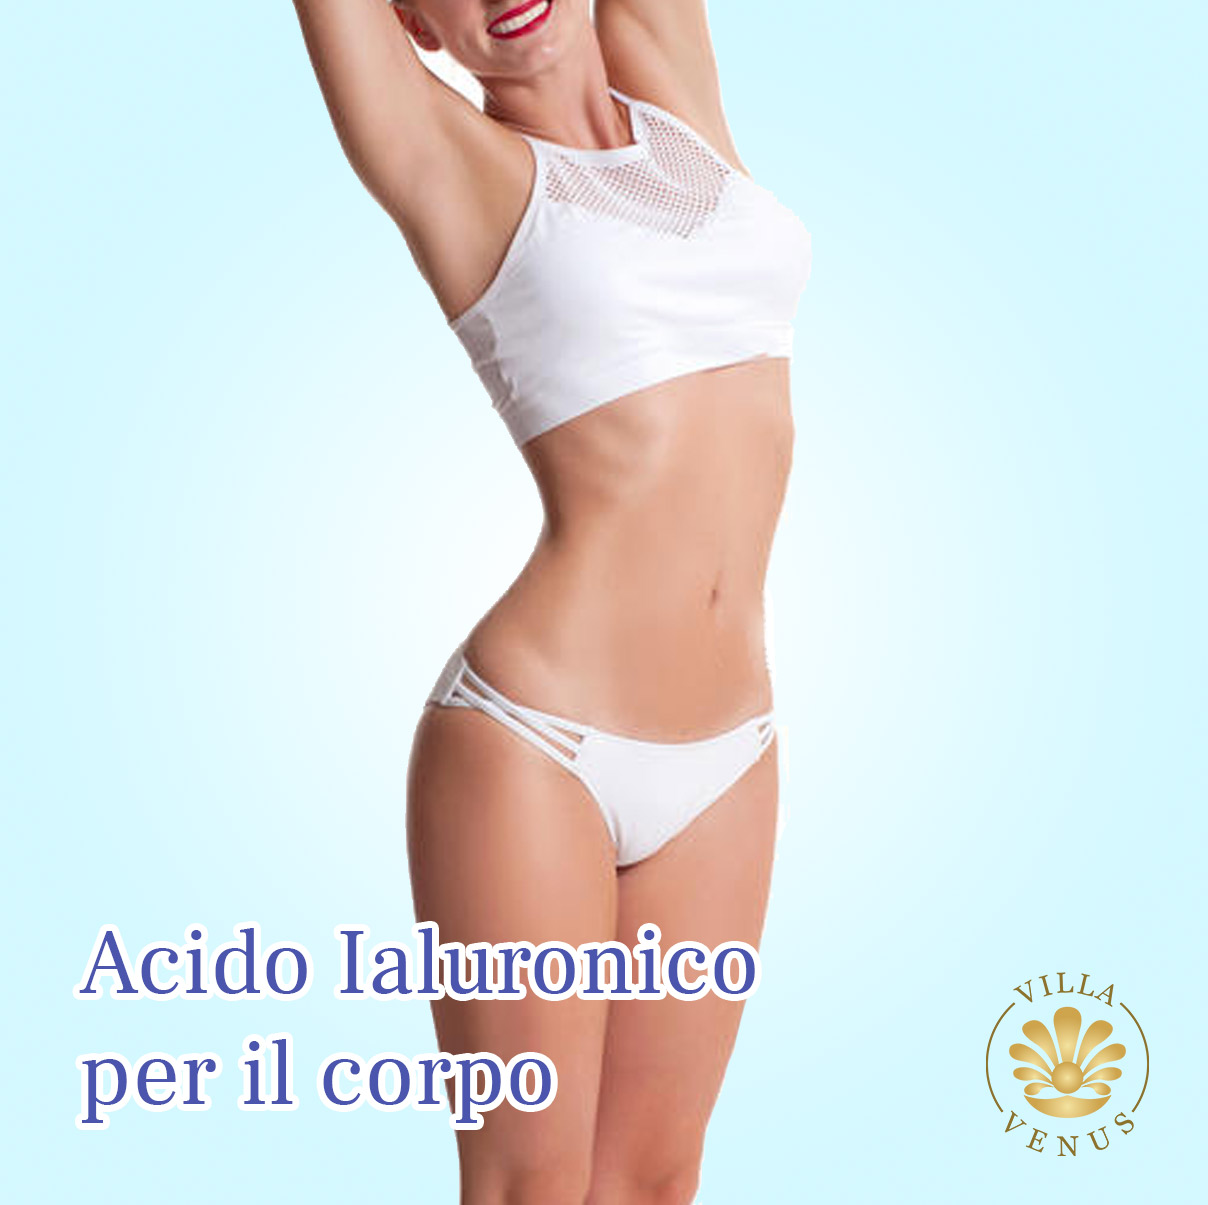 Acido Ialuronico Corpo